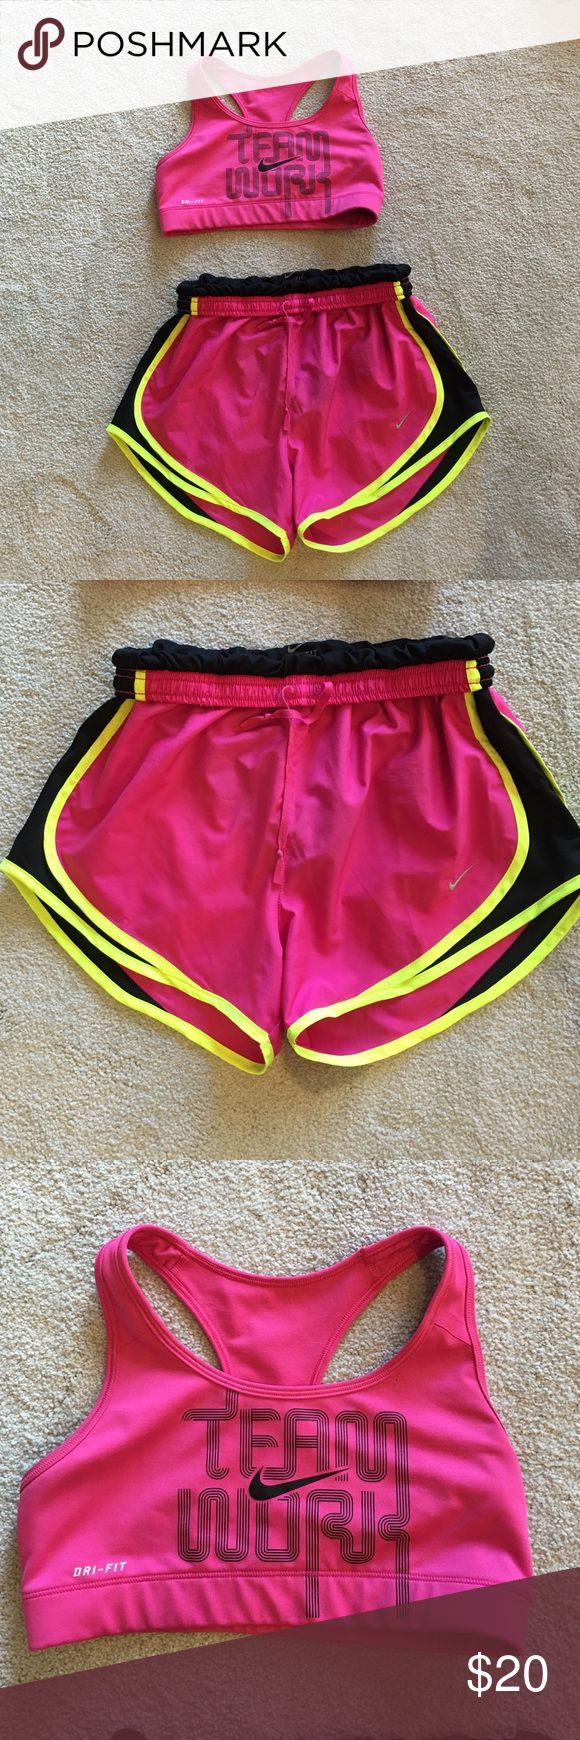 Nike drifit shorts and bra top both small Pink workout outfit ! Includes shorts and drifit bra top by Nike . Size small .a little wear on the inside of bra top - does not show on the outside . Nike Shorts